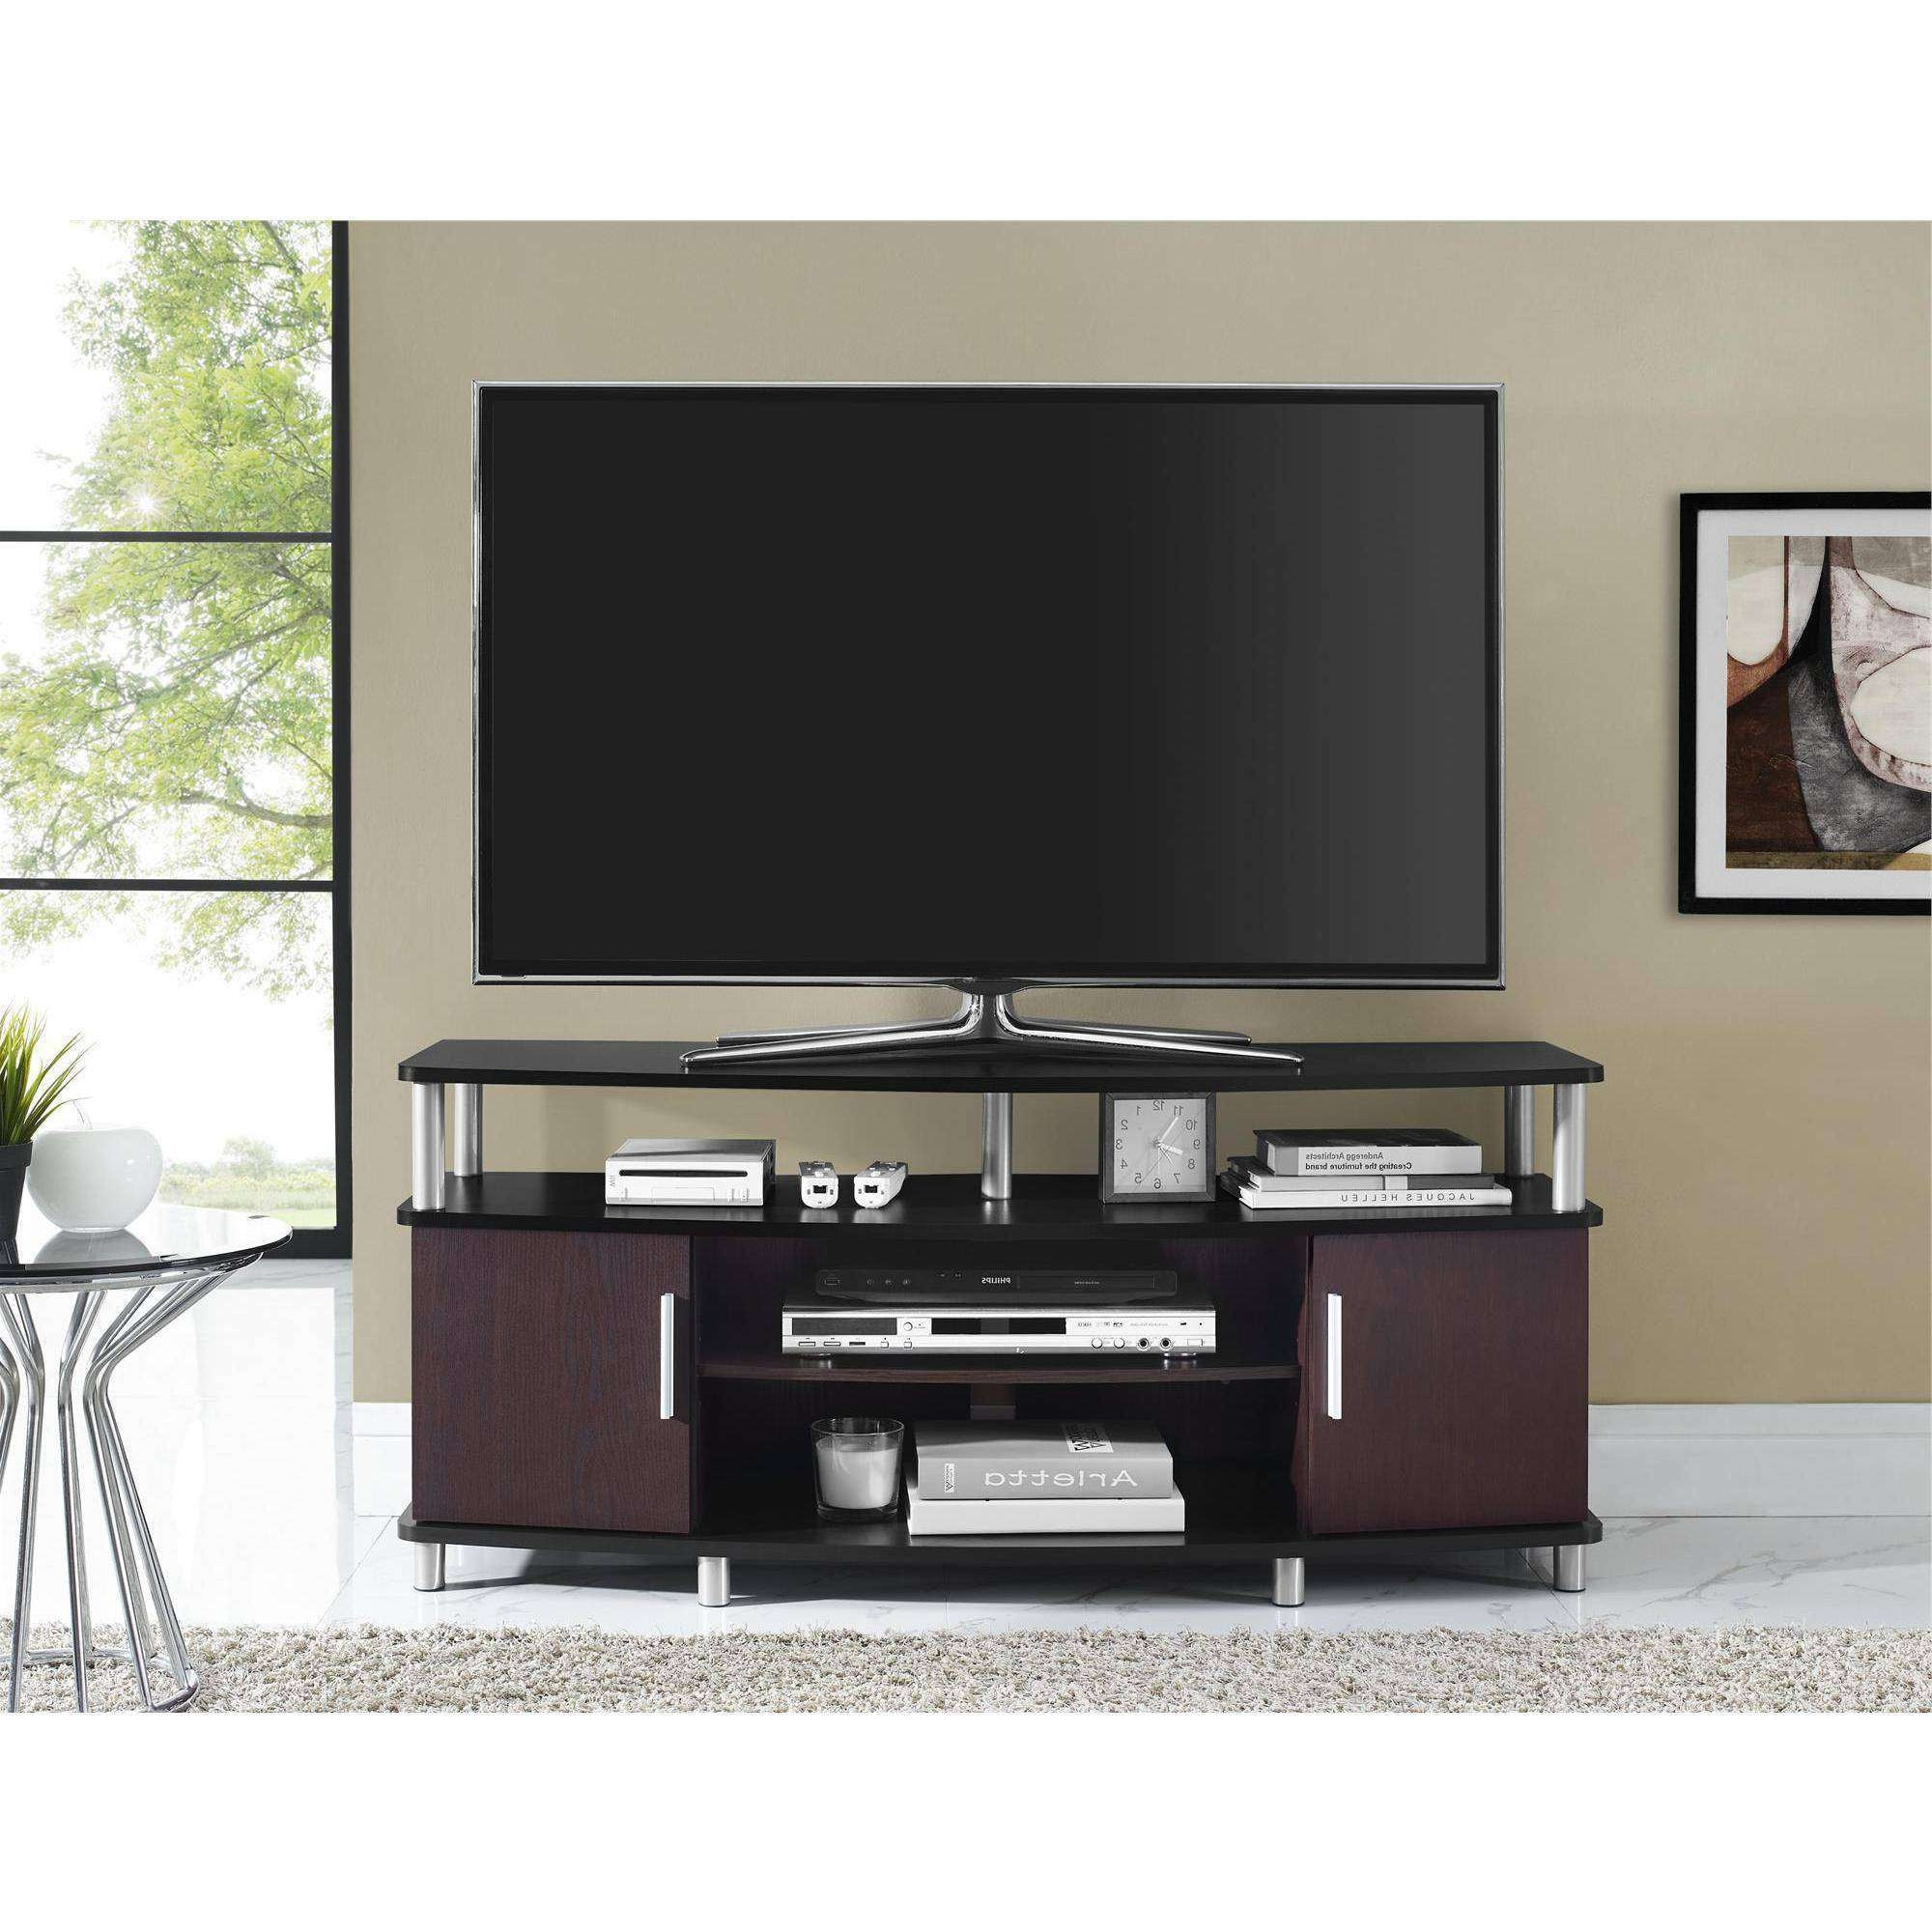 Fancy Carson Tv Stand For Tvs Up To 50 Multiple Finishes 34 In Regarding Fancy Tv Stands (View 2 of 15)